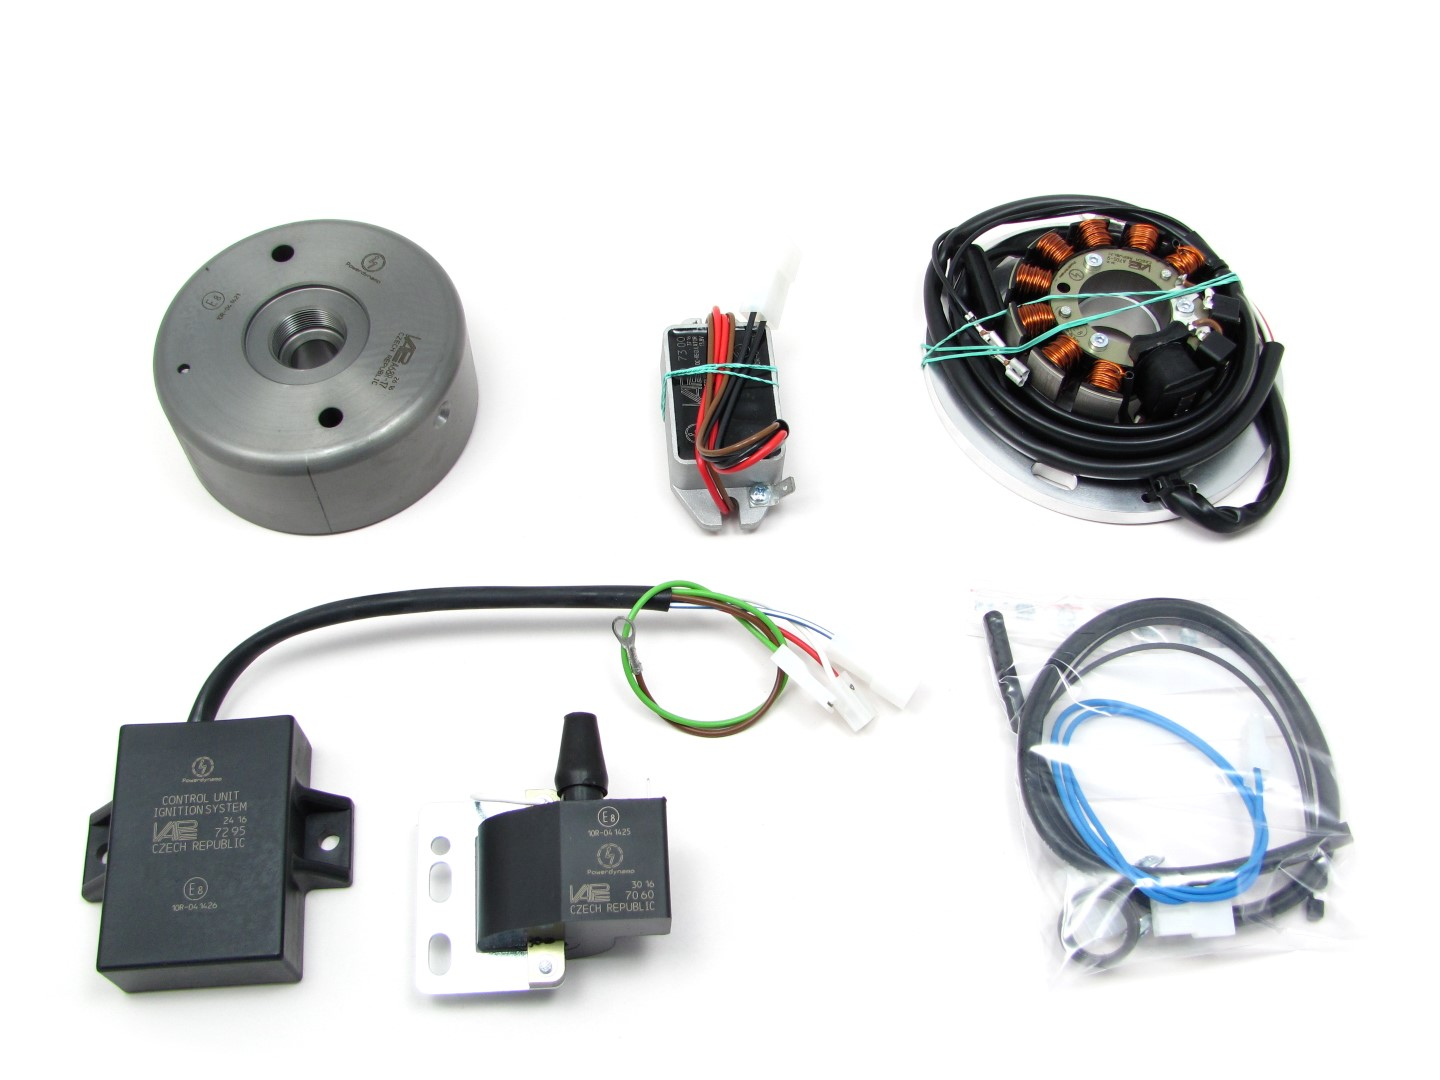 Powerdynamo for Yamaha XT 500, SR 500 and TT500 with 1,4kg rotor on